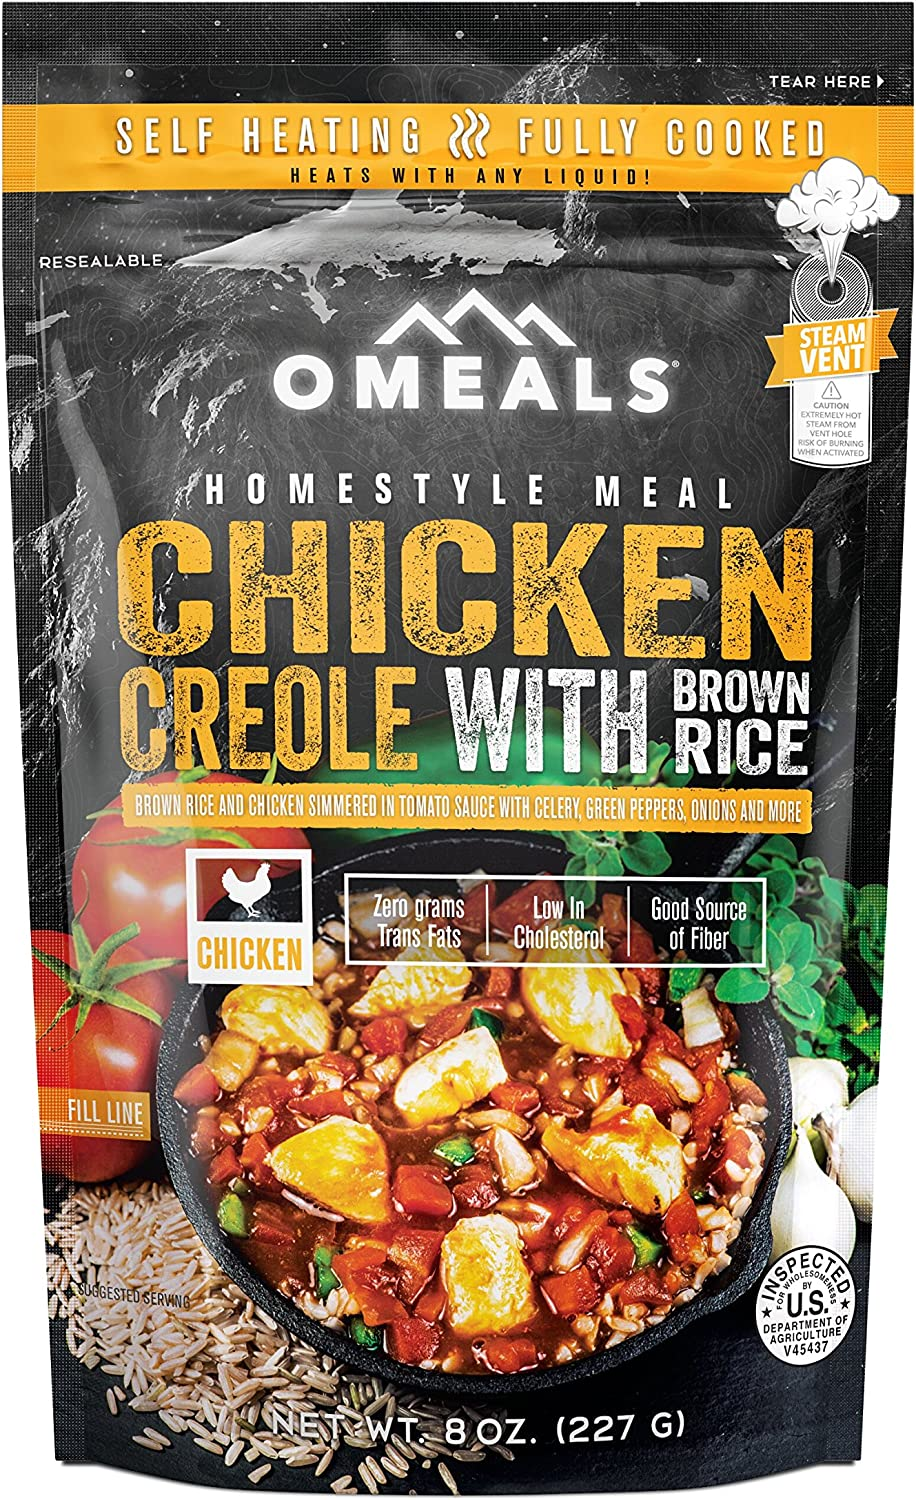 OMEALS Chicken Creole with Brown Rice - Homestyle Meals